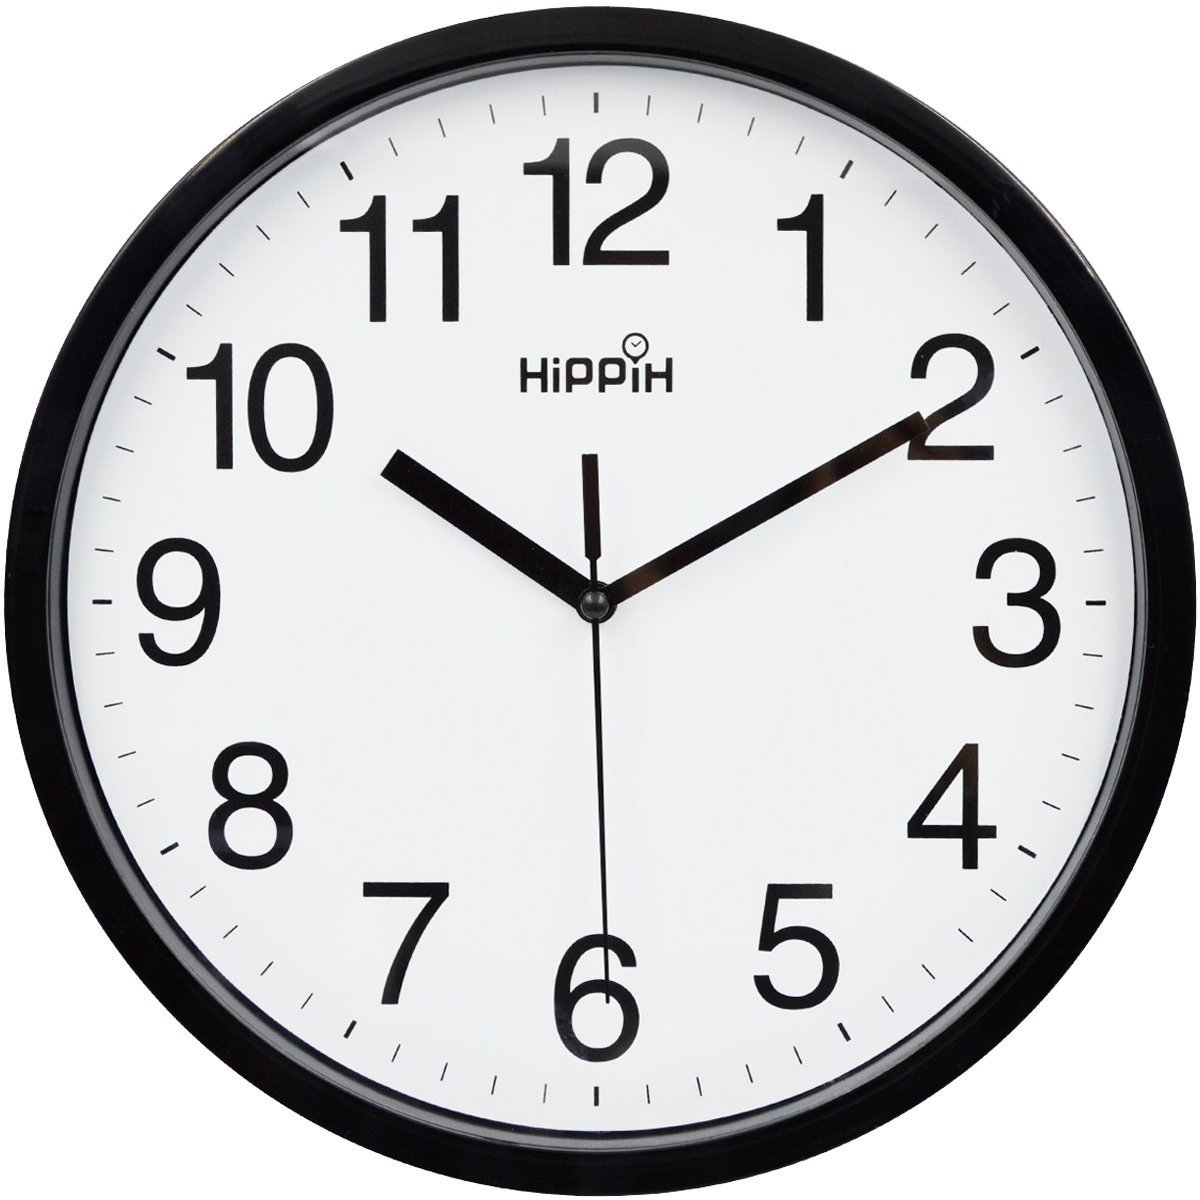 Shop amazon wall clocks hippih 10 silent quartz decorative wall clock non ticking digitalblack amipublicfo Image collections